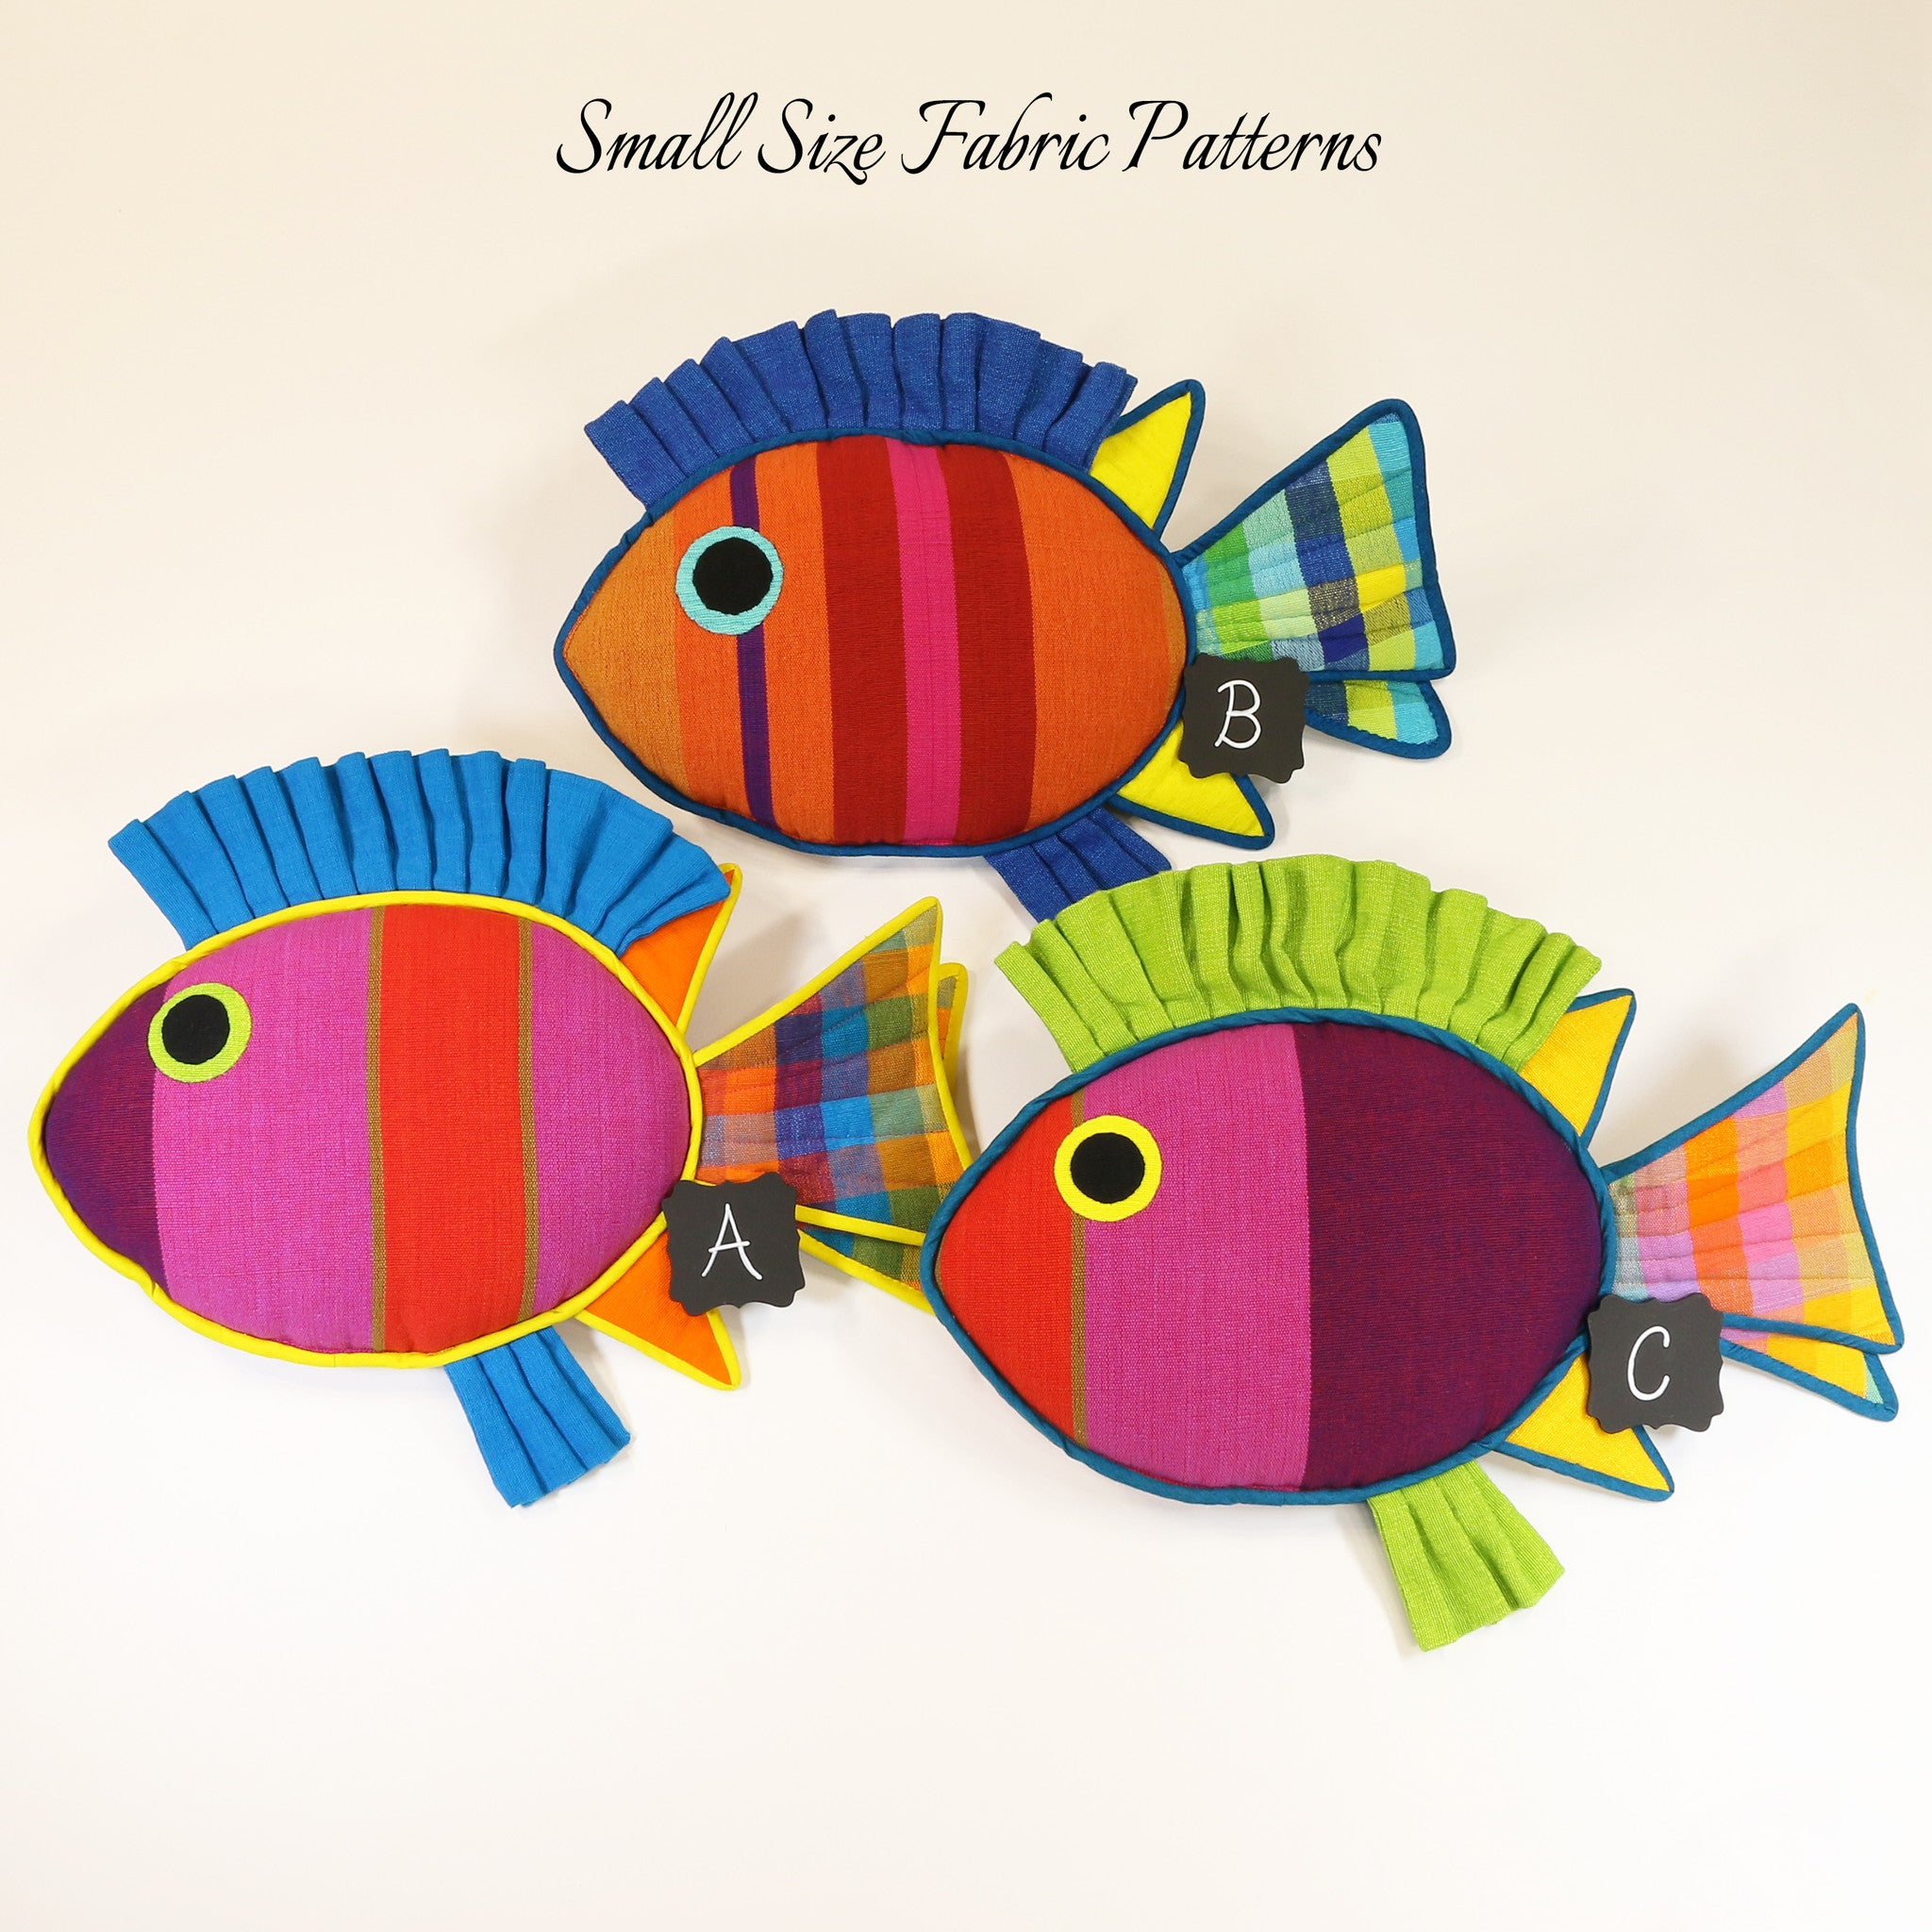 Mindy, the Rabbit Fish – small size fabric patterns shown